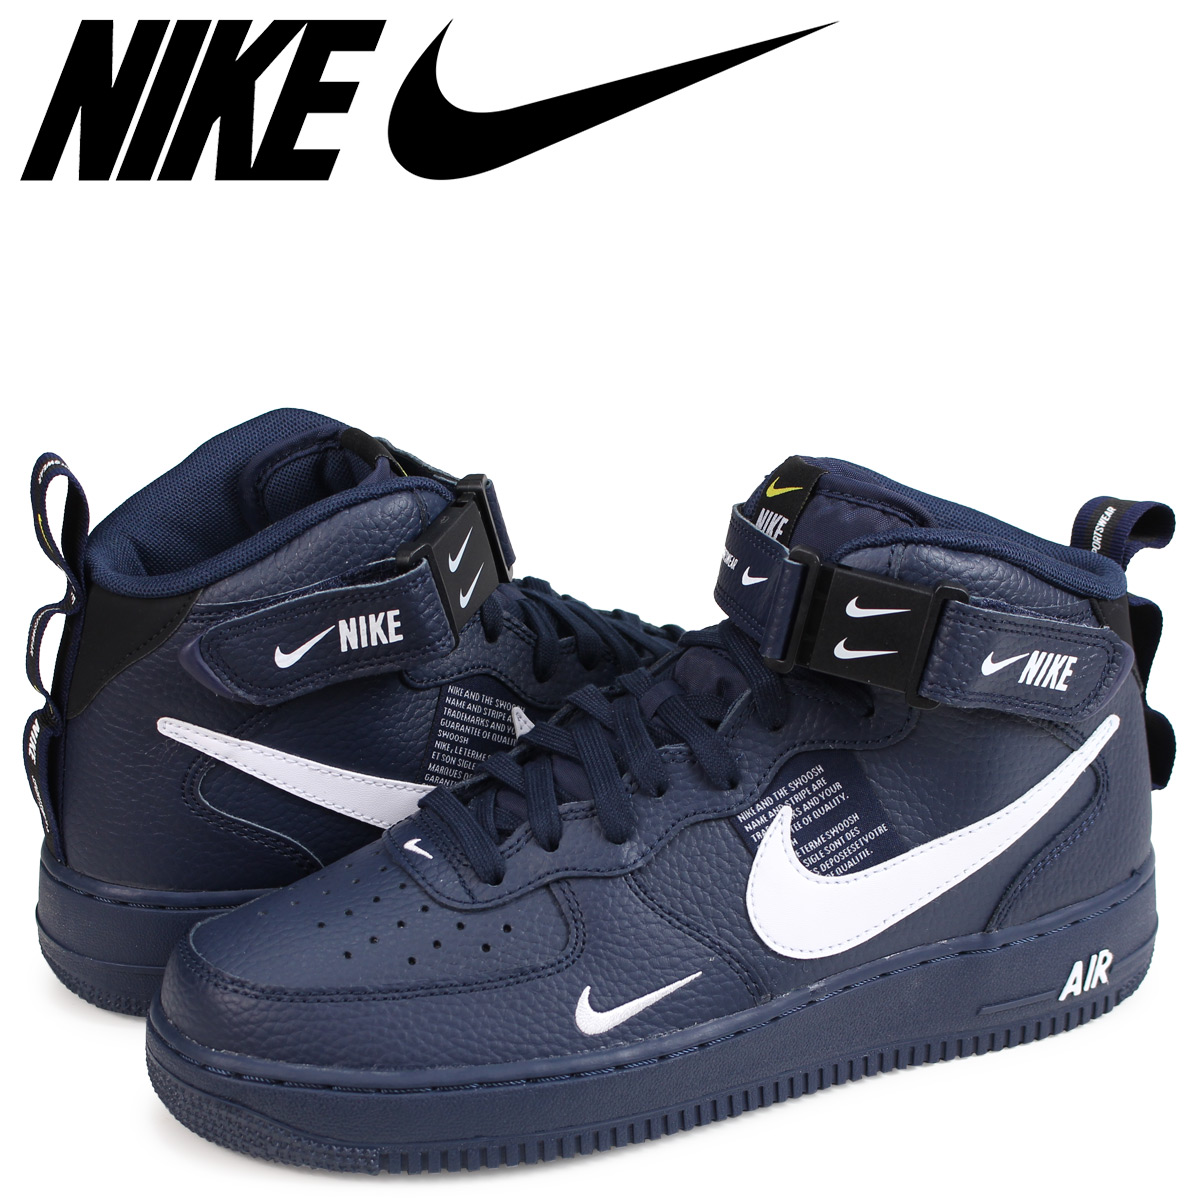 brand NIKE getting high popularity from sneakers freak . Constant seller  model